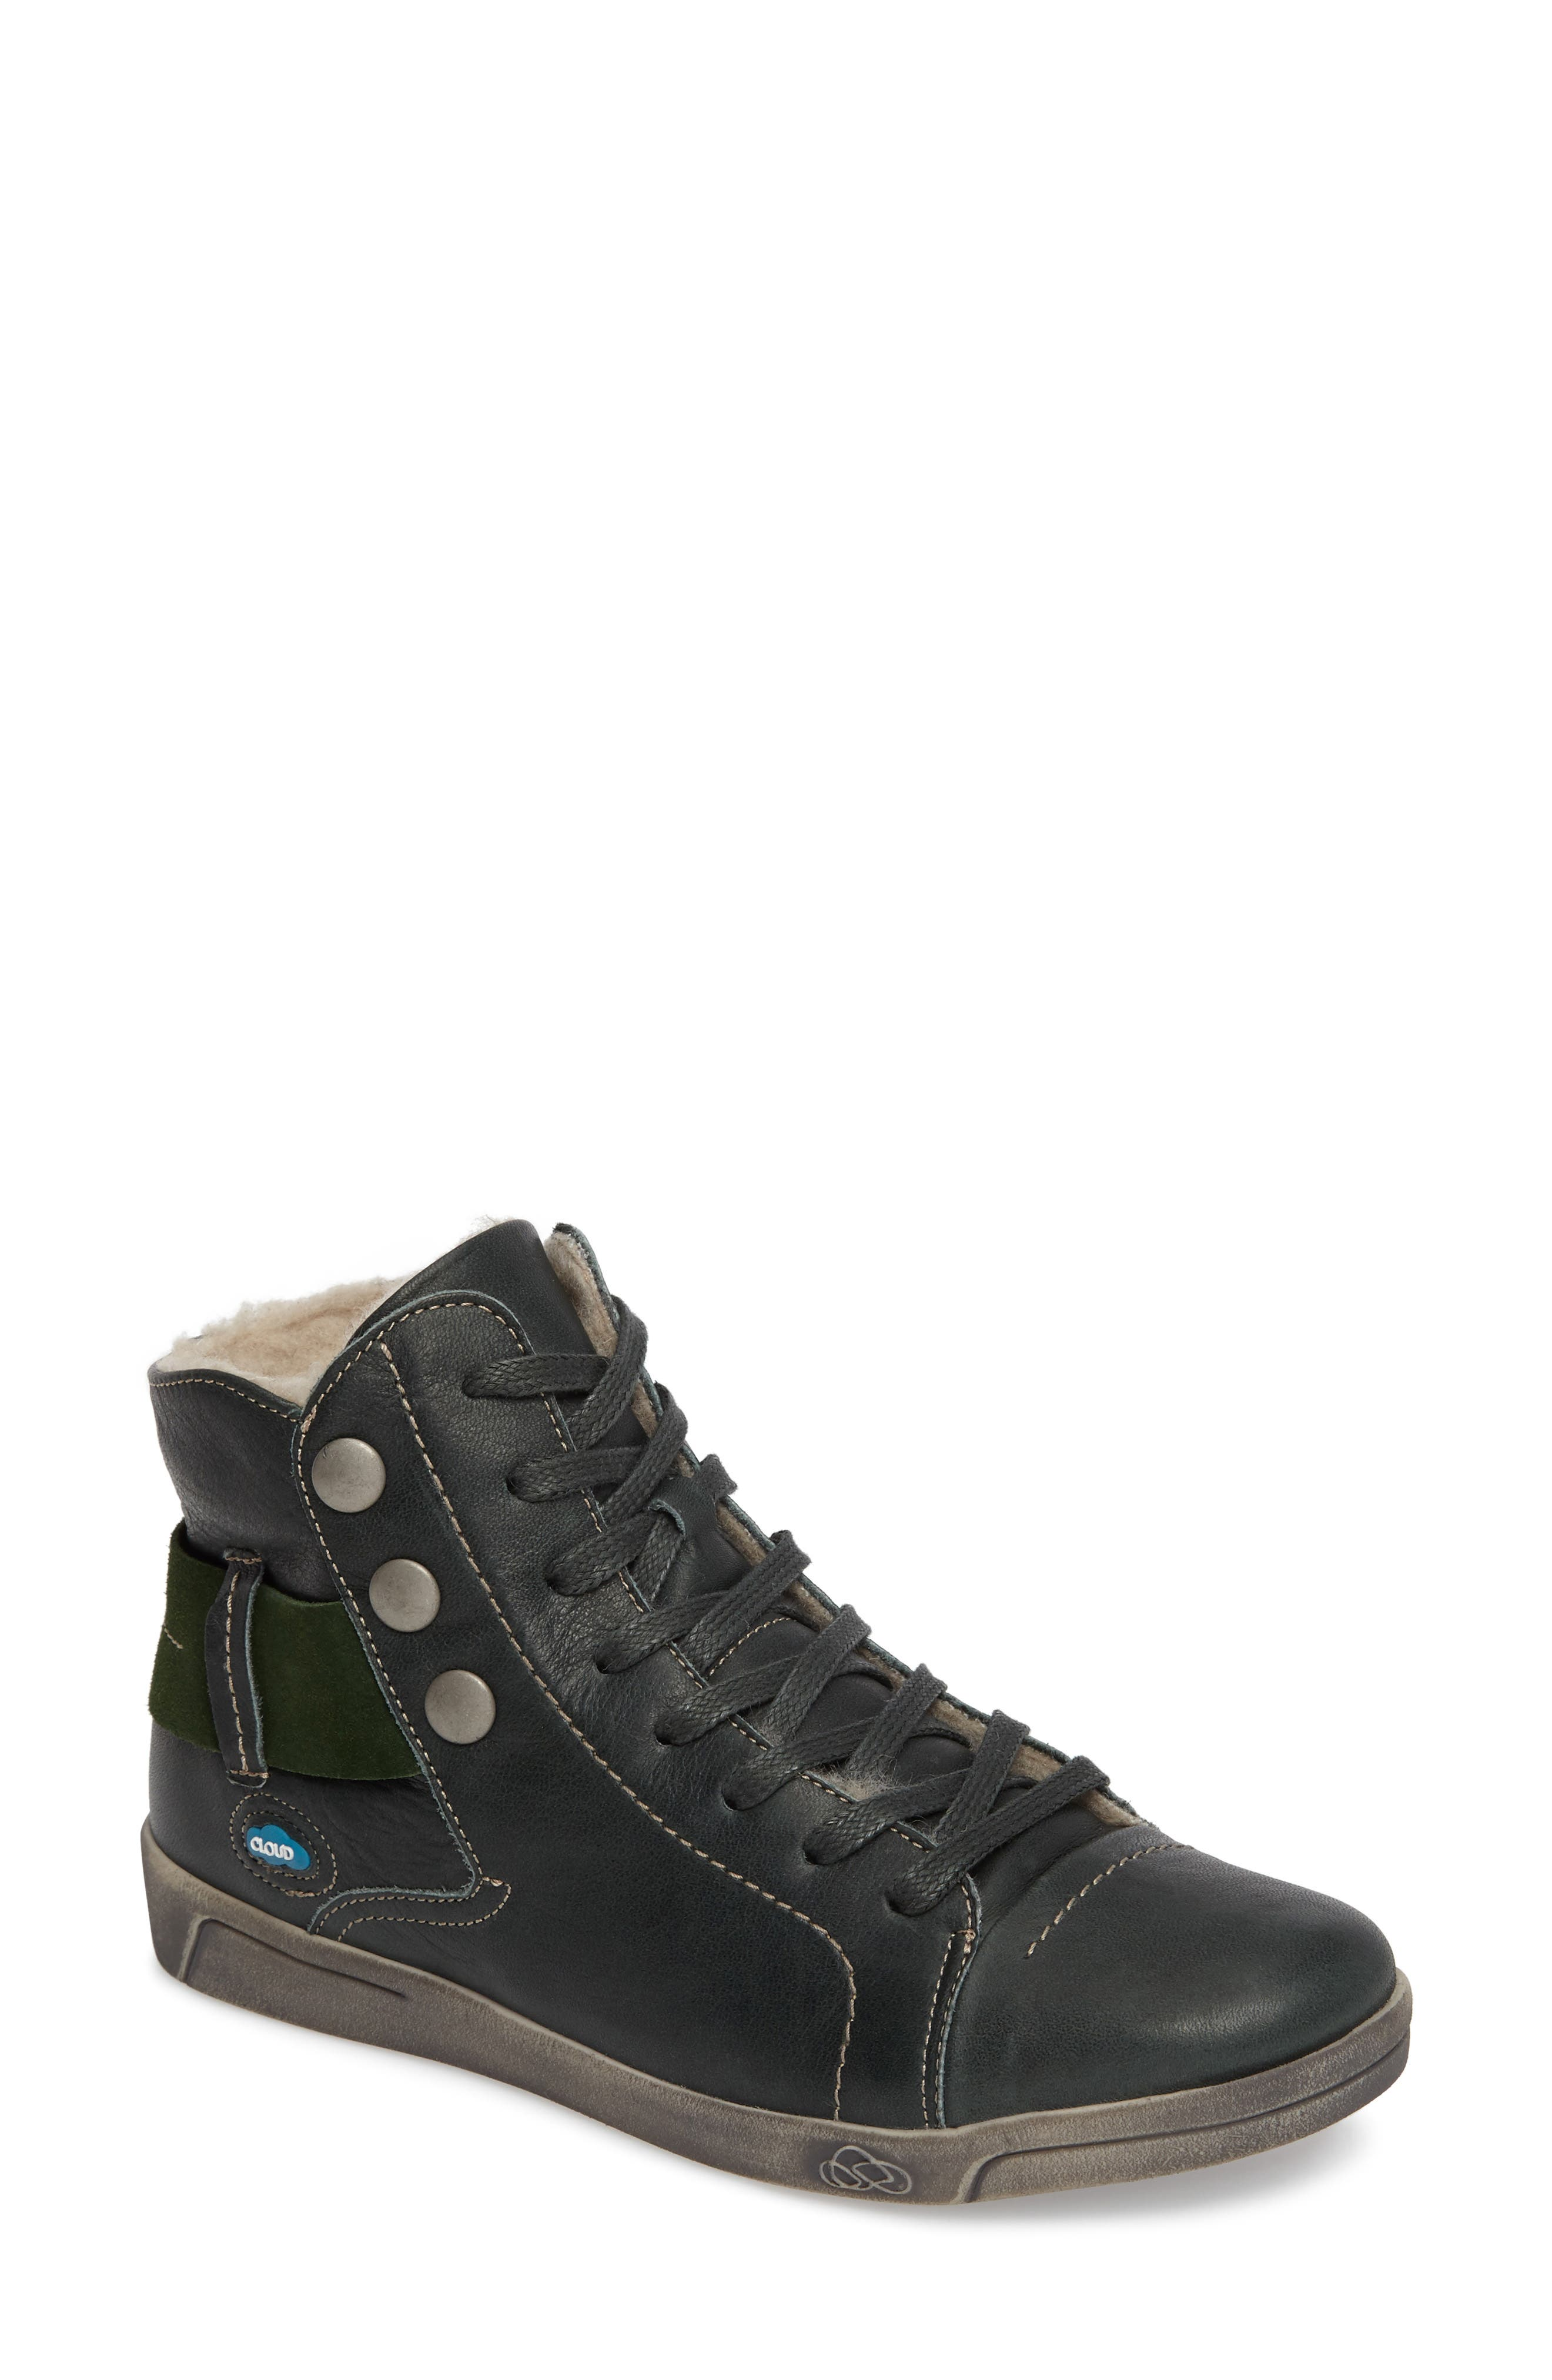 'Aline' Sneaker,                         Main,                         color, GREEN LEATHER